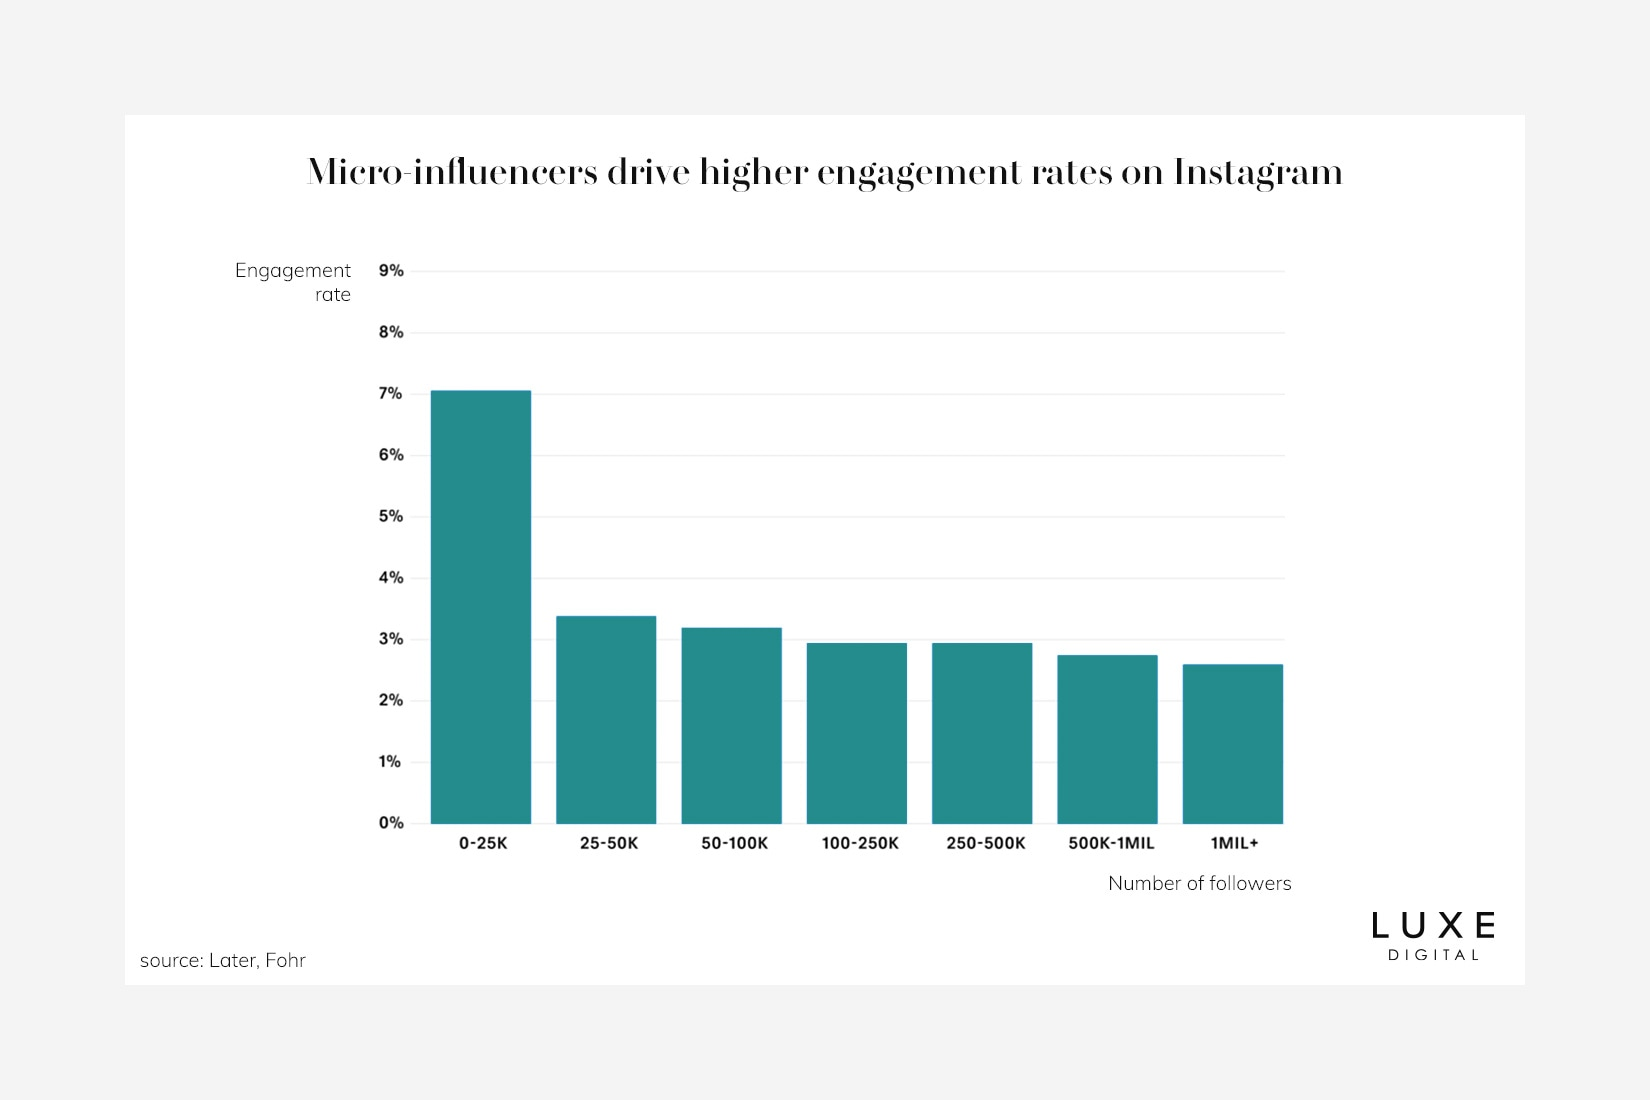 social media influencer marketing engagement rates - Luxe Digital